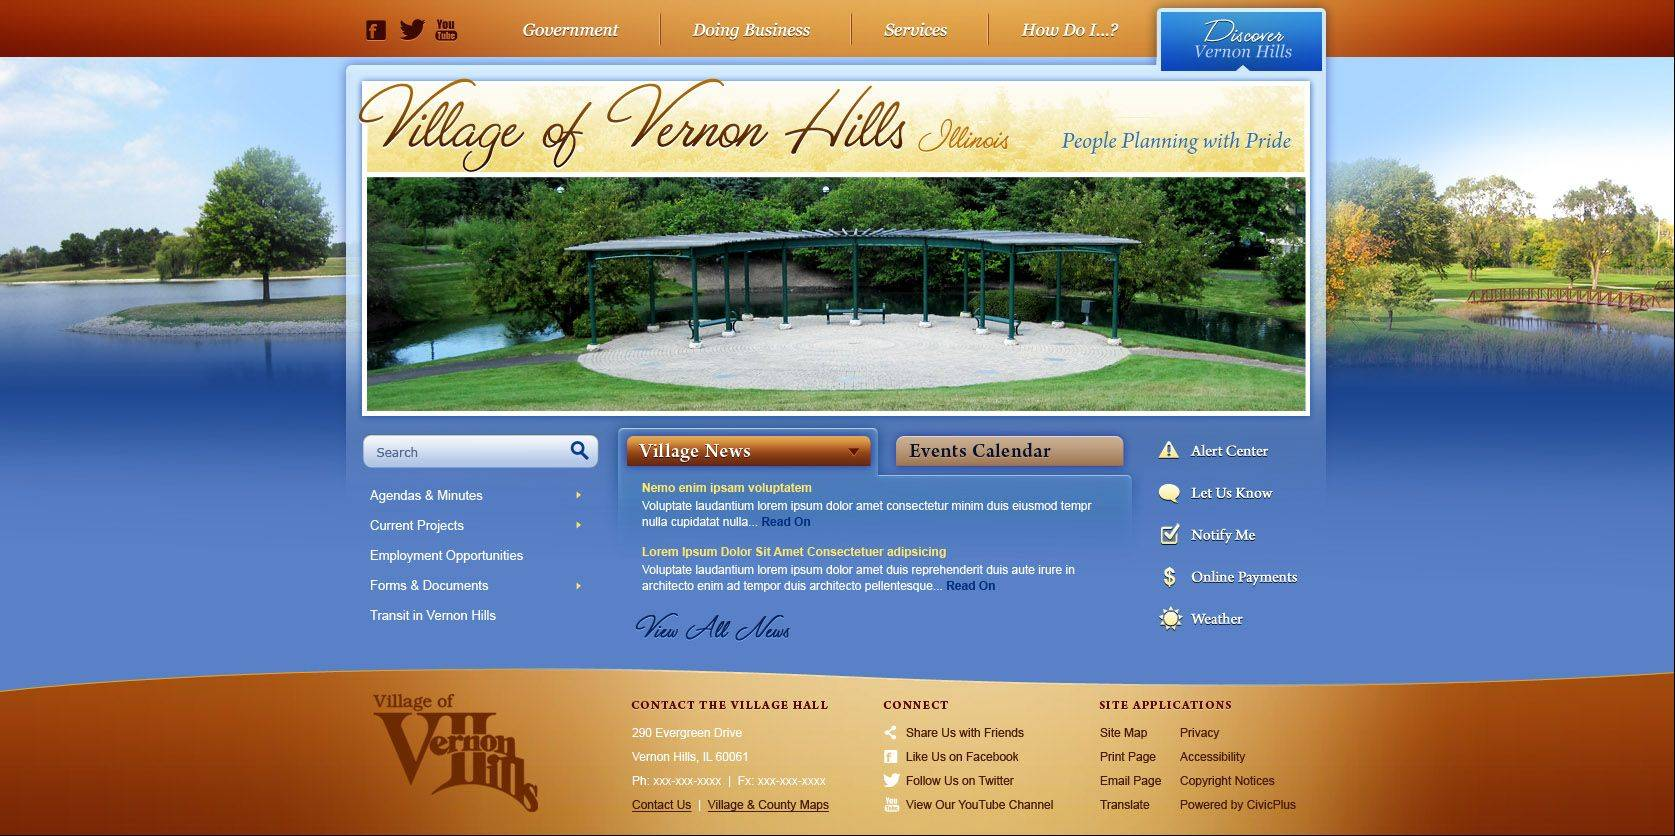 The Village of Vernon Hills is launching a newly designed website at 5 p.m. Thursday. Officials say the new site will be easier for residents to navigate and learn about village happenings.